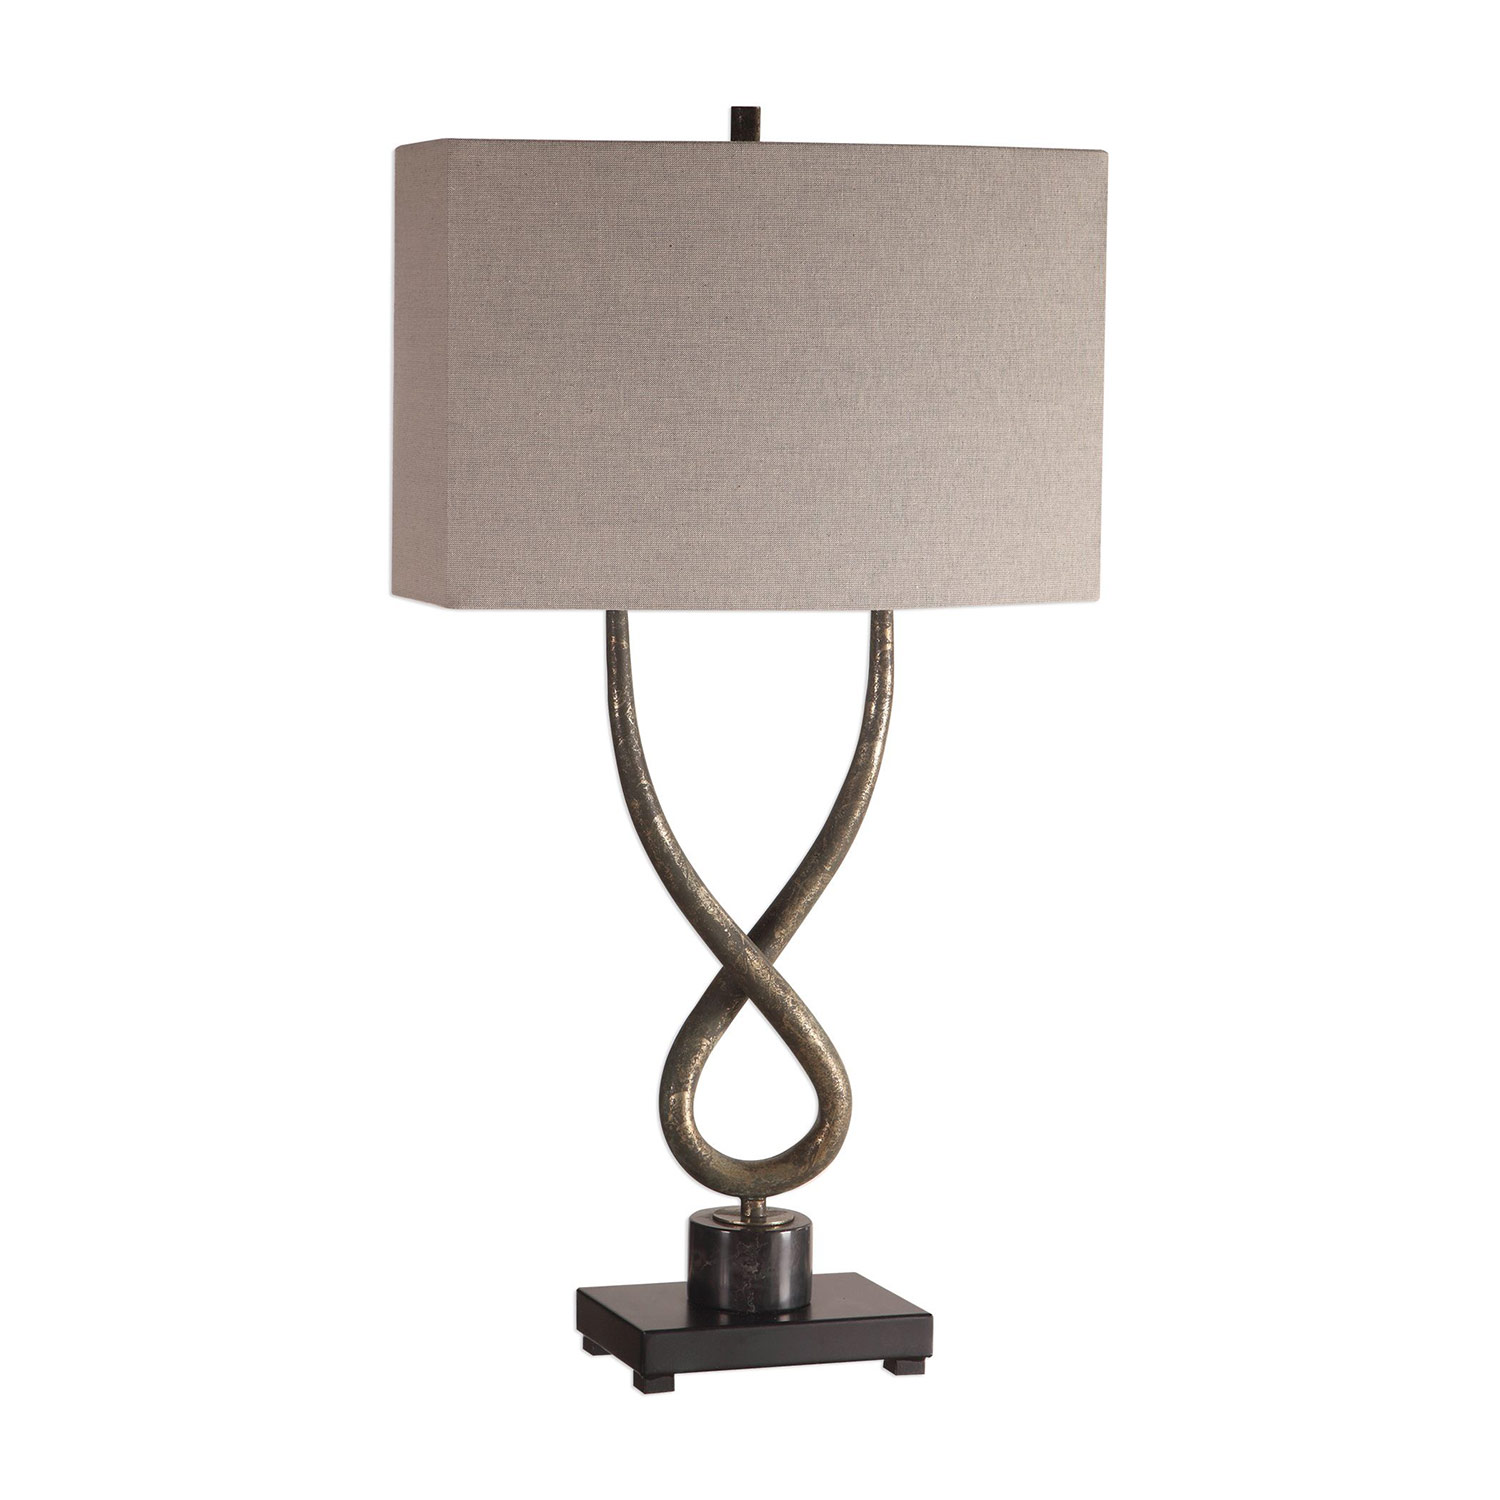 Uttermost Talema Lamp - Aged Silver